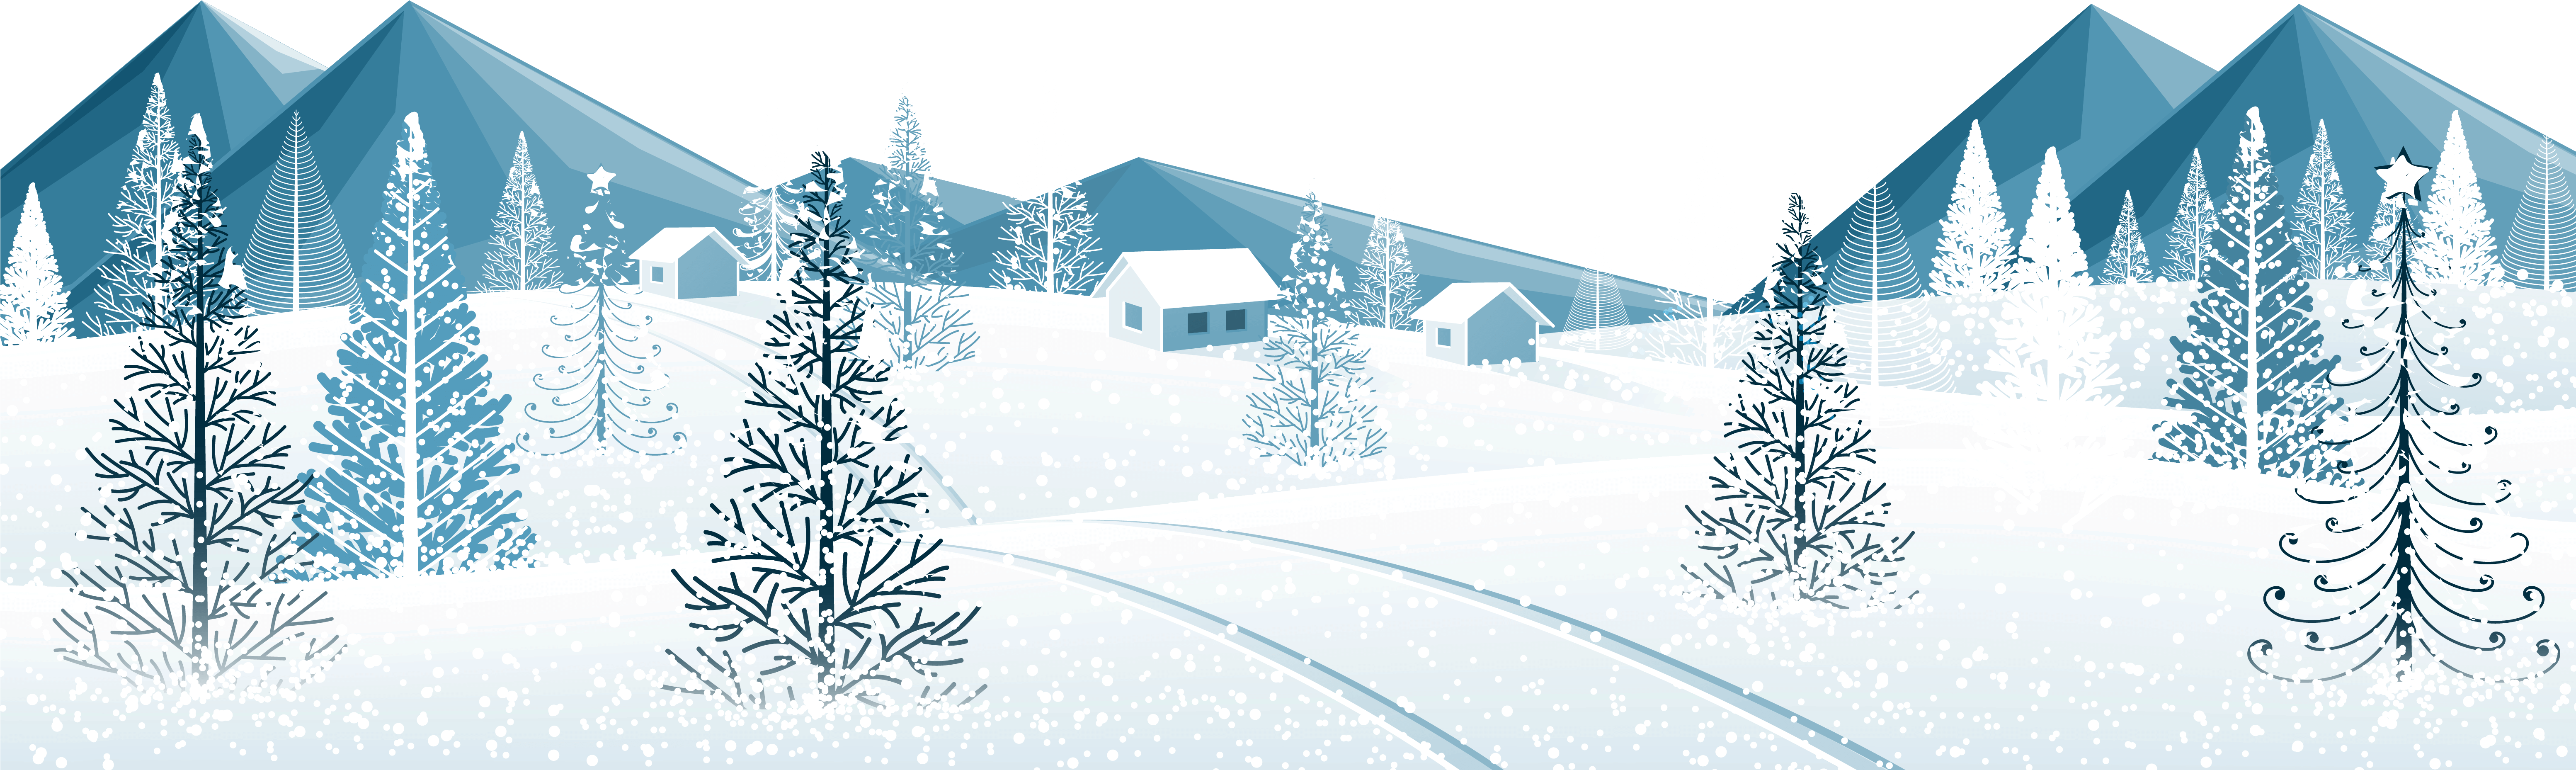 Download Winter Ground With Trees Png Clipart Image.